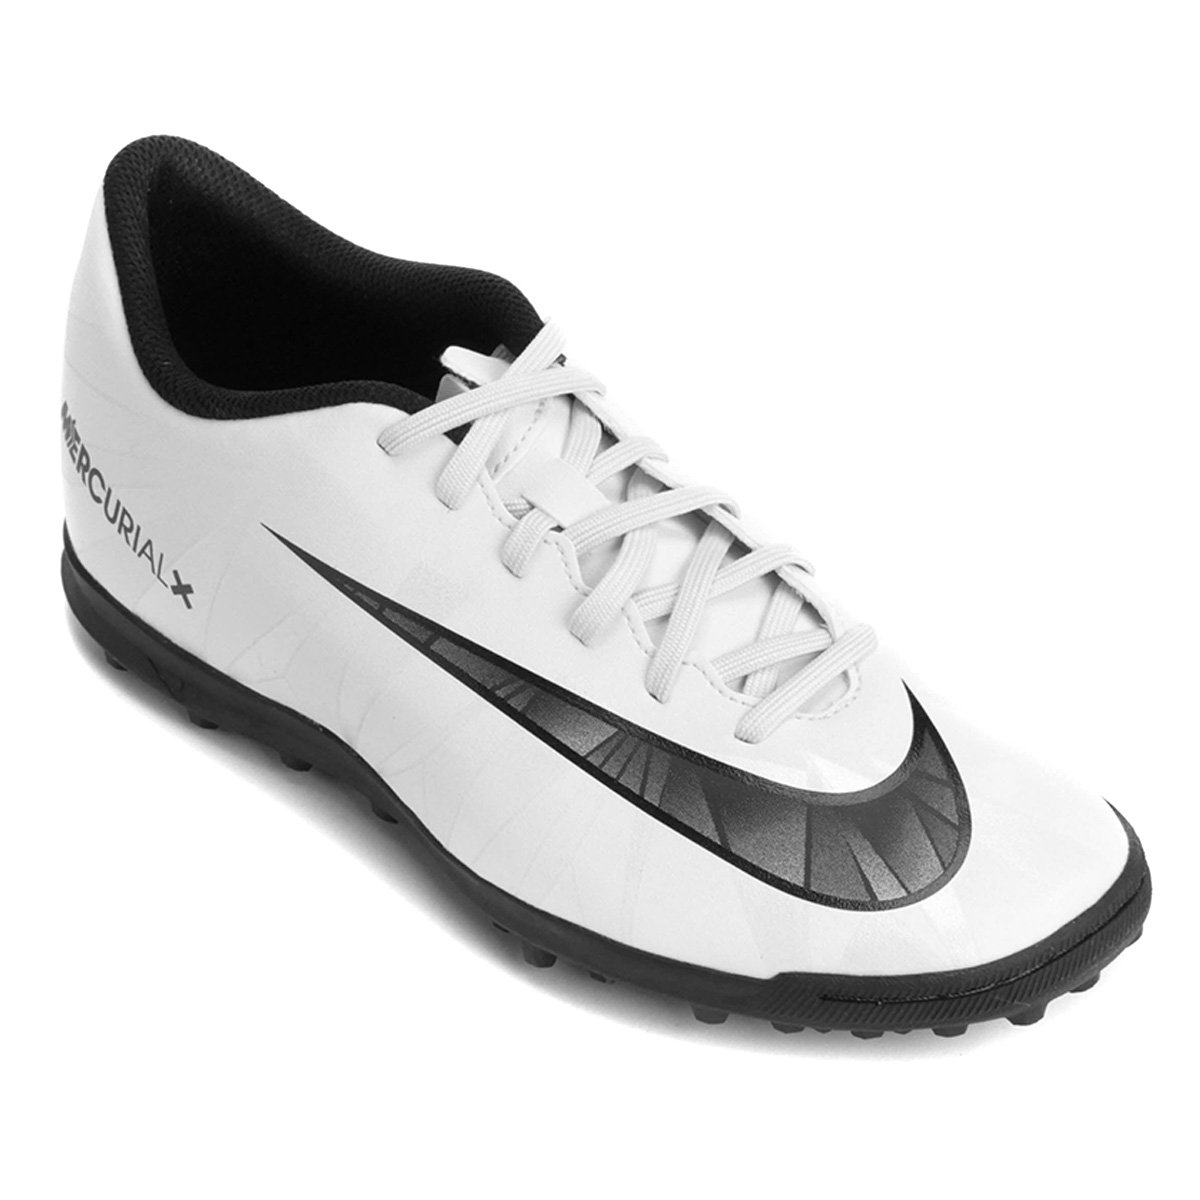 3601d584bb79c Chuteira Society Nike Mercurial X Vortex 3 CR7 TF | Loja do Inter